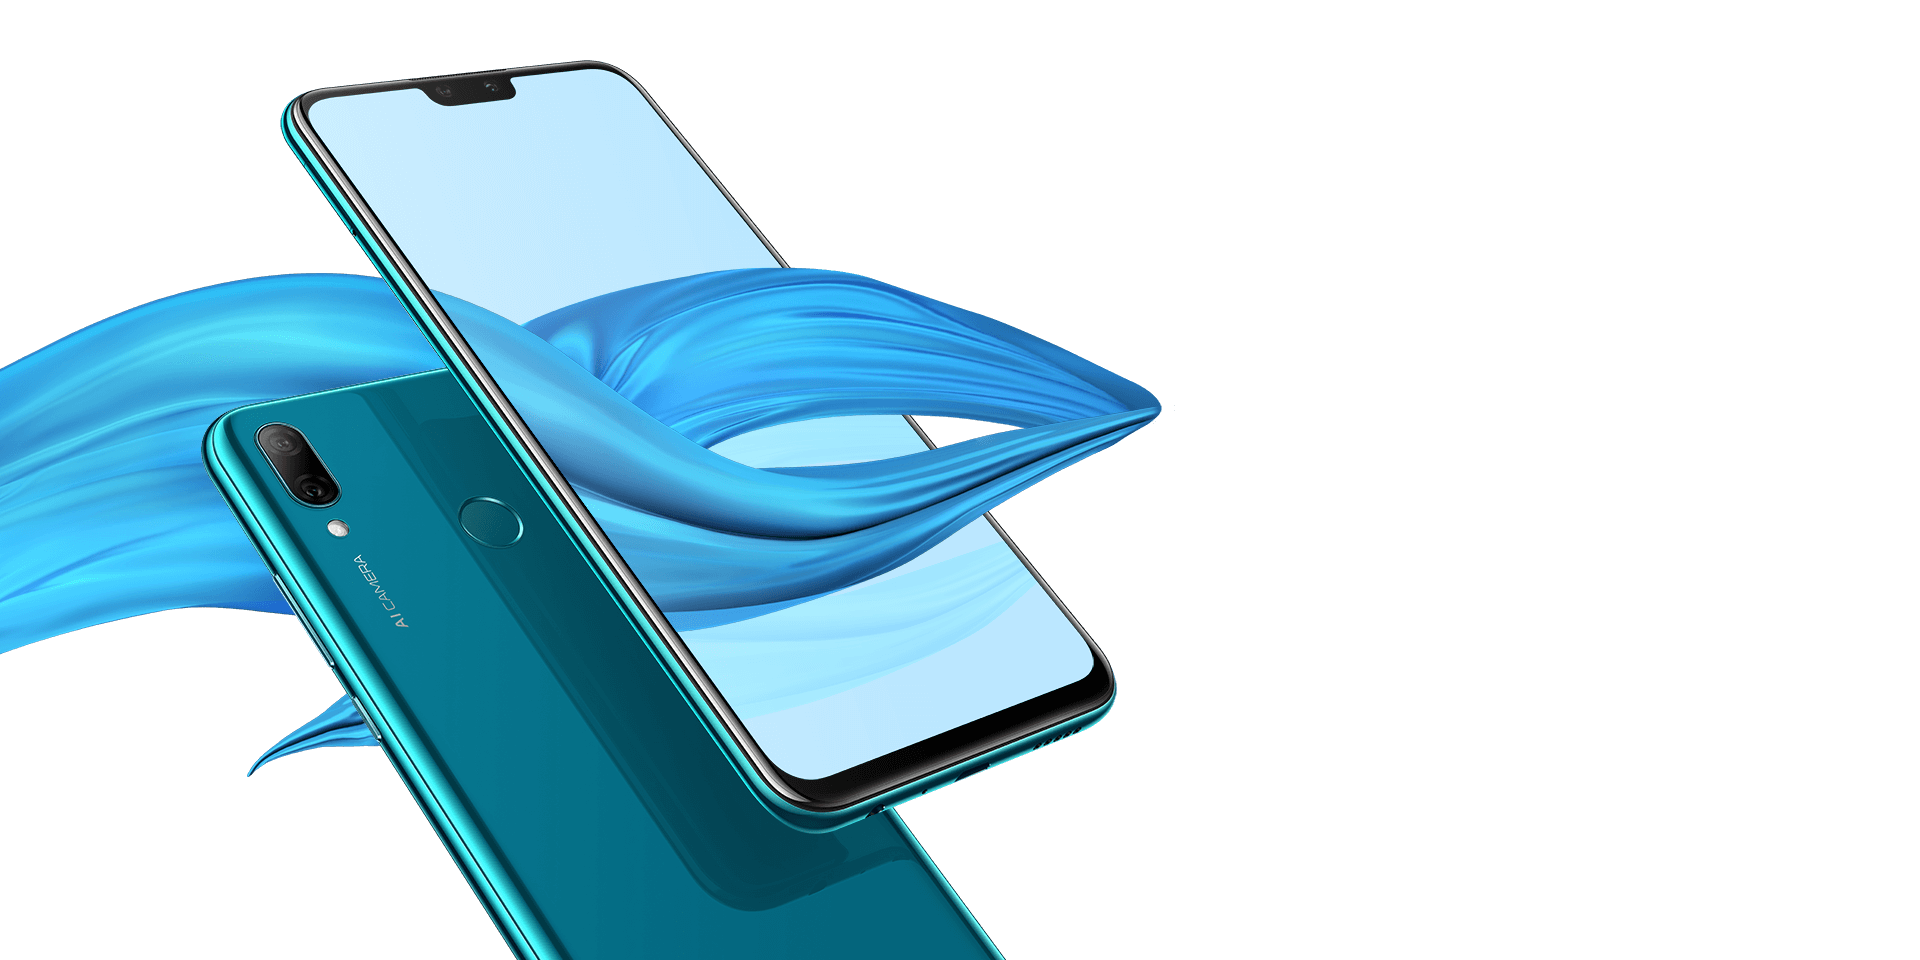 Huawei Y9 2019....list and specs of prominent phones Huawei released the previous year, 2018 - alongs side with their prices